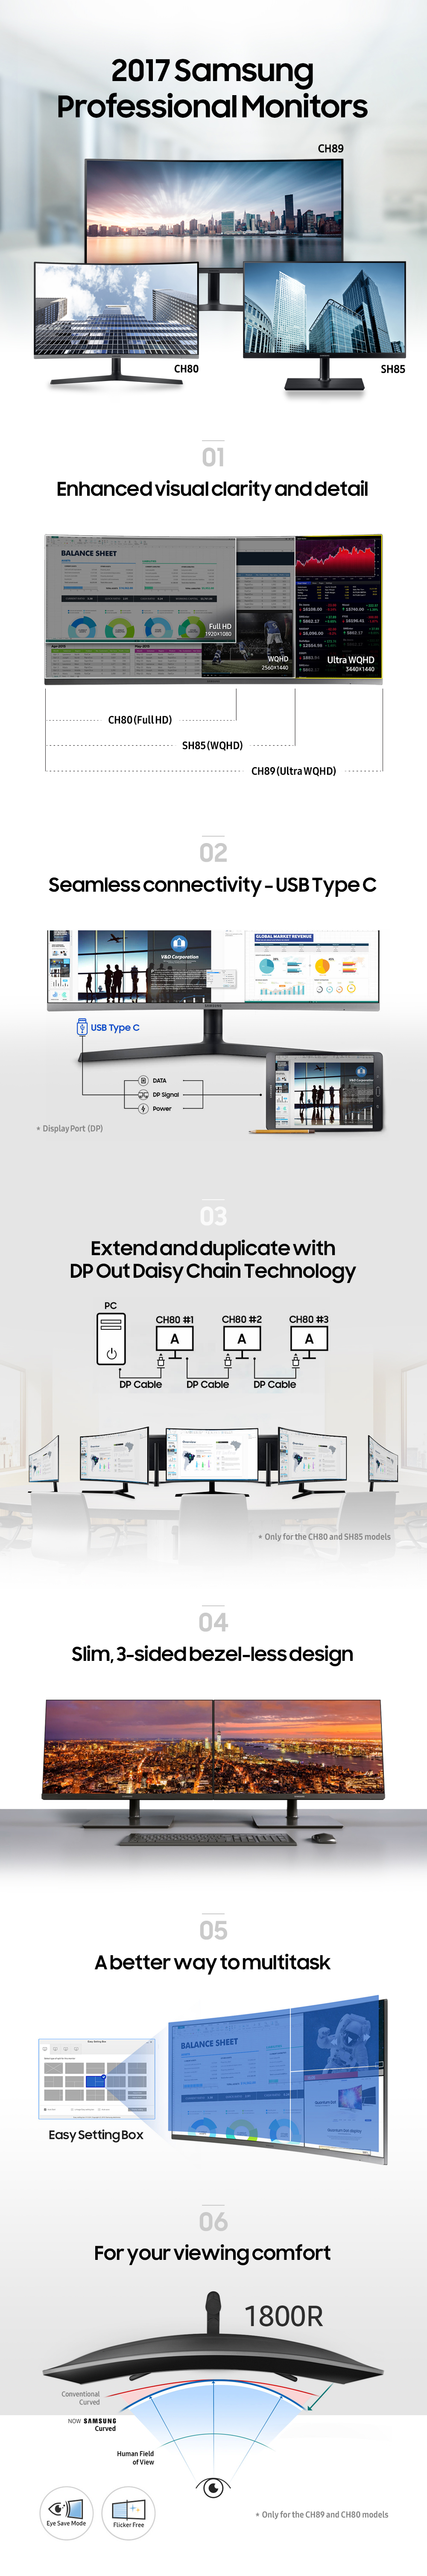 [Infographic] Samsung's New Professional Monitors for the Modern Workplace